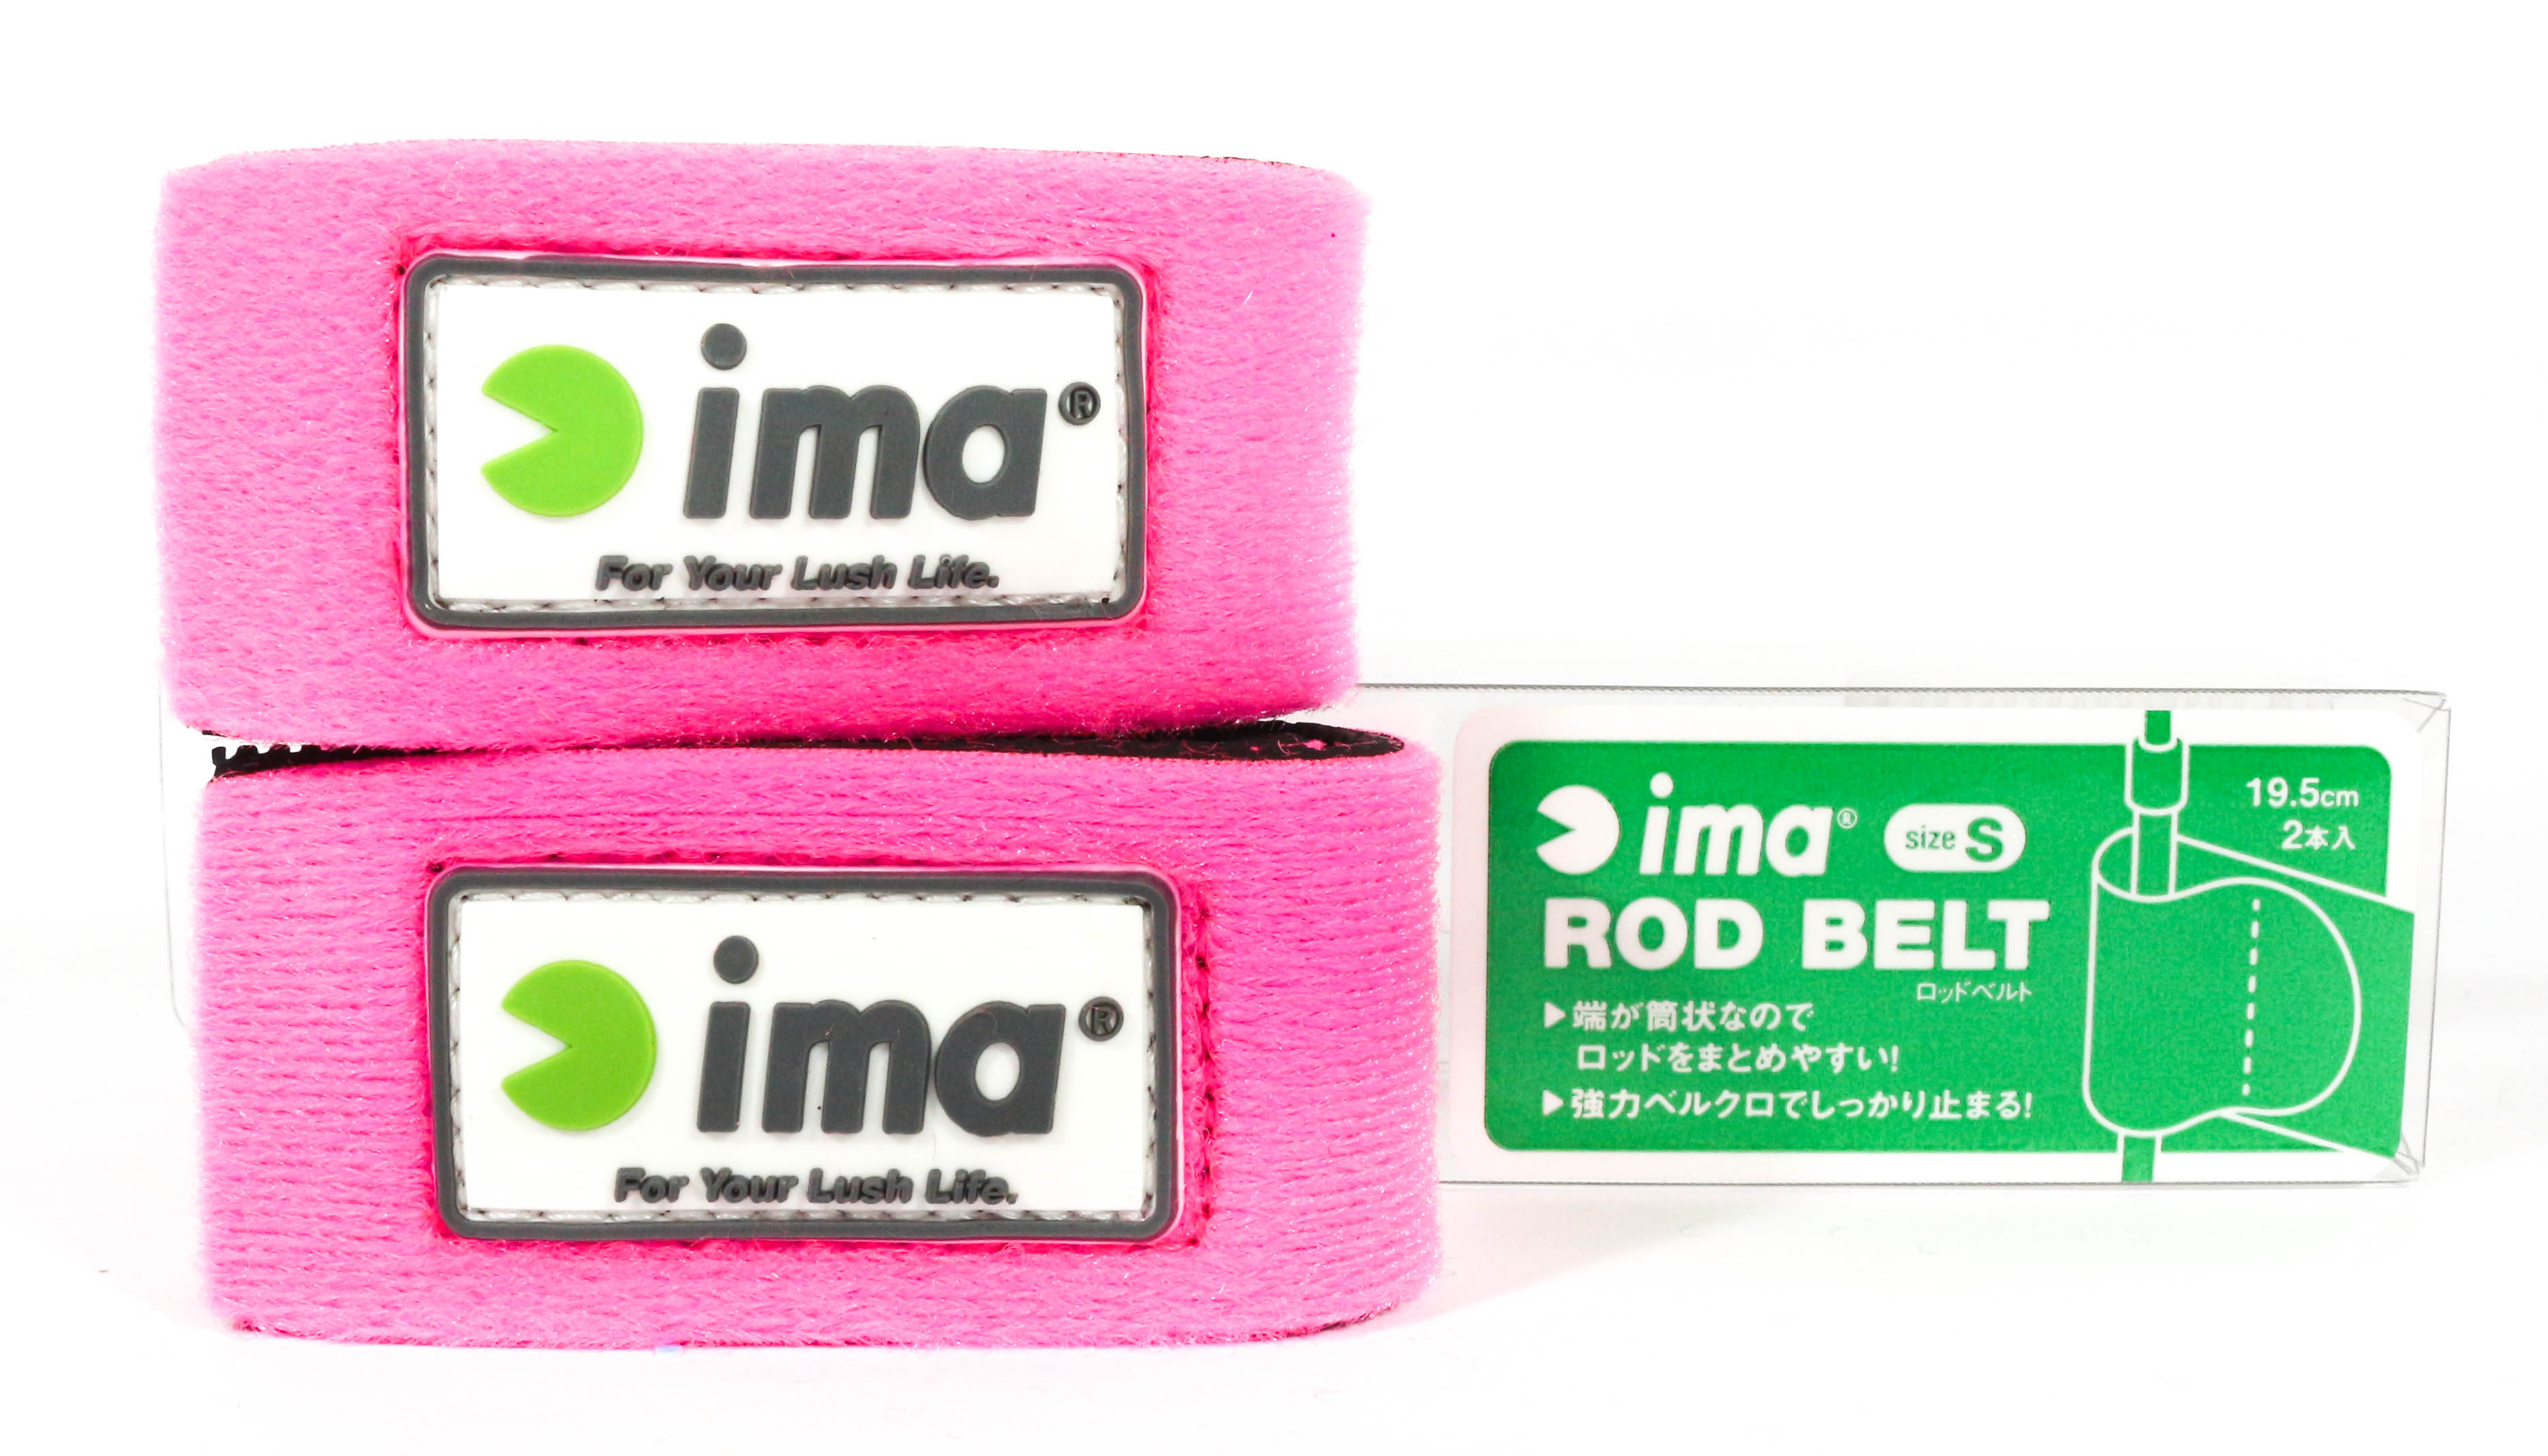 Sale Ima Rod Belt Strap Size S 2 Piece Pack Pink (2560)